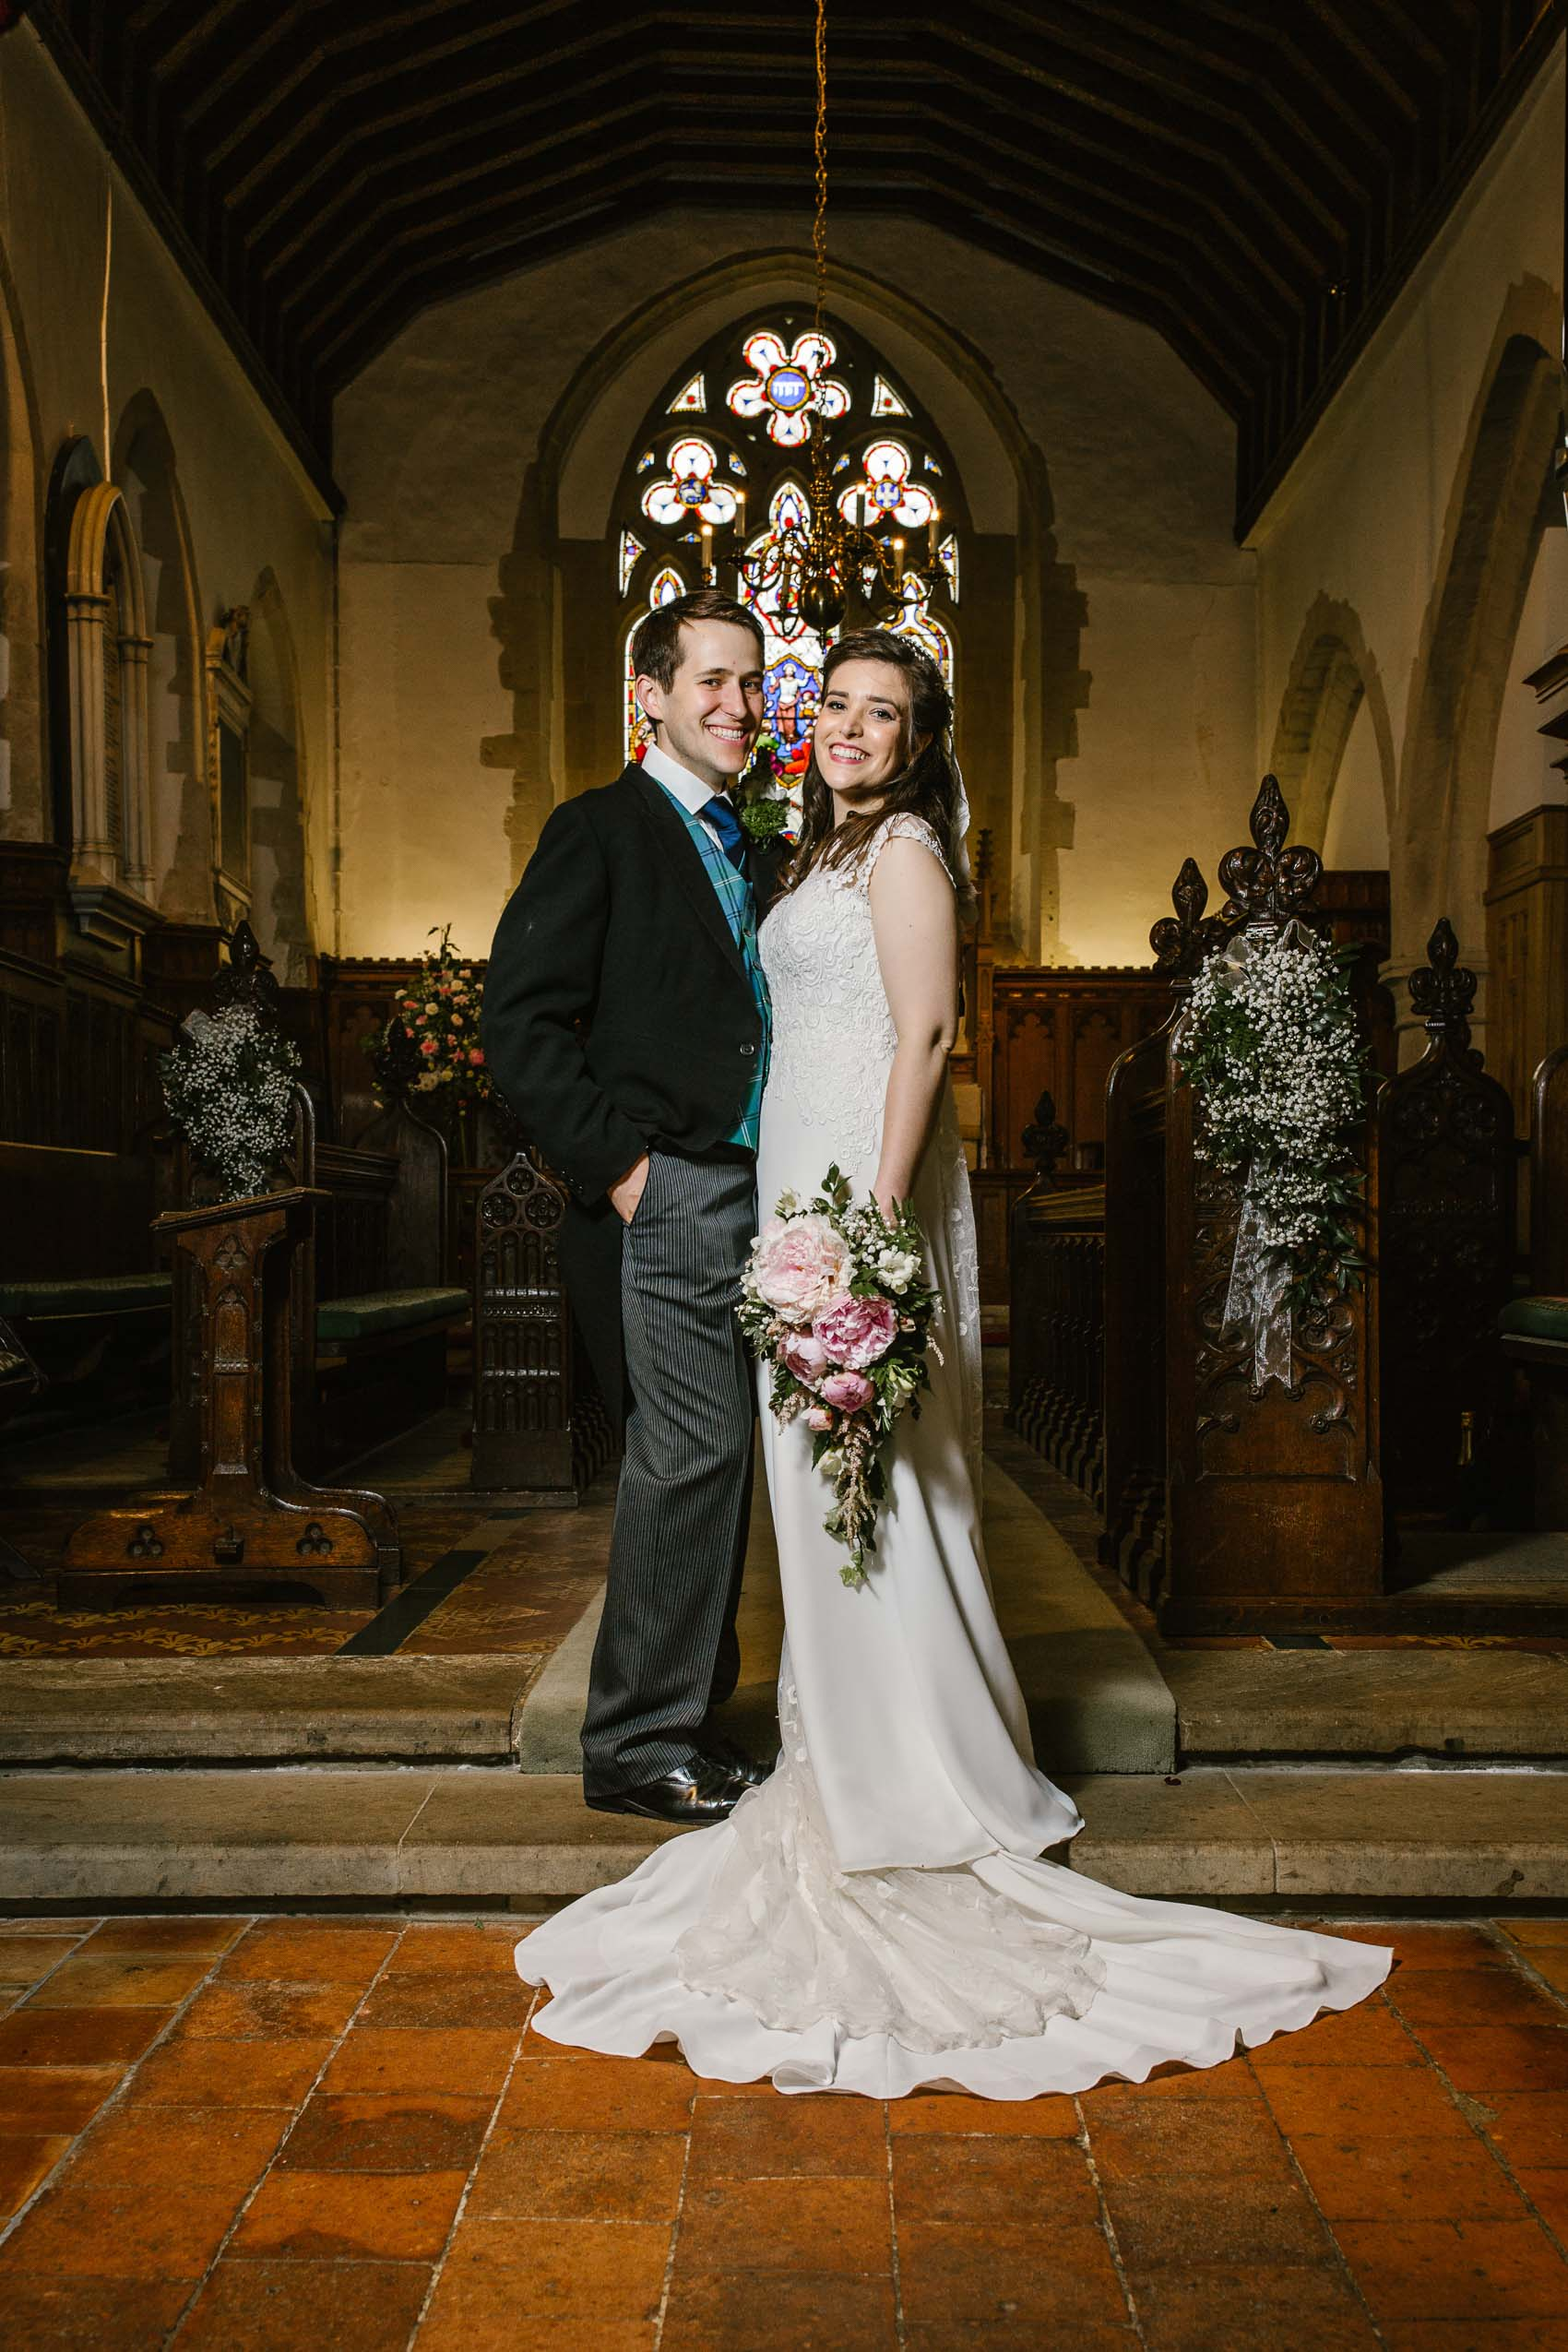 Stanhill Court Wedding Photography - Lizzie and Sam 23